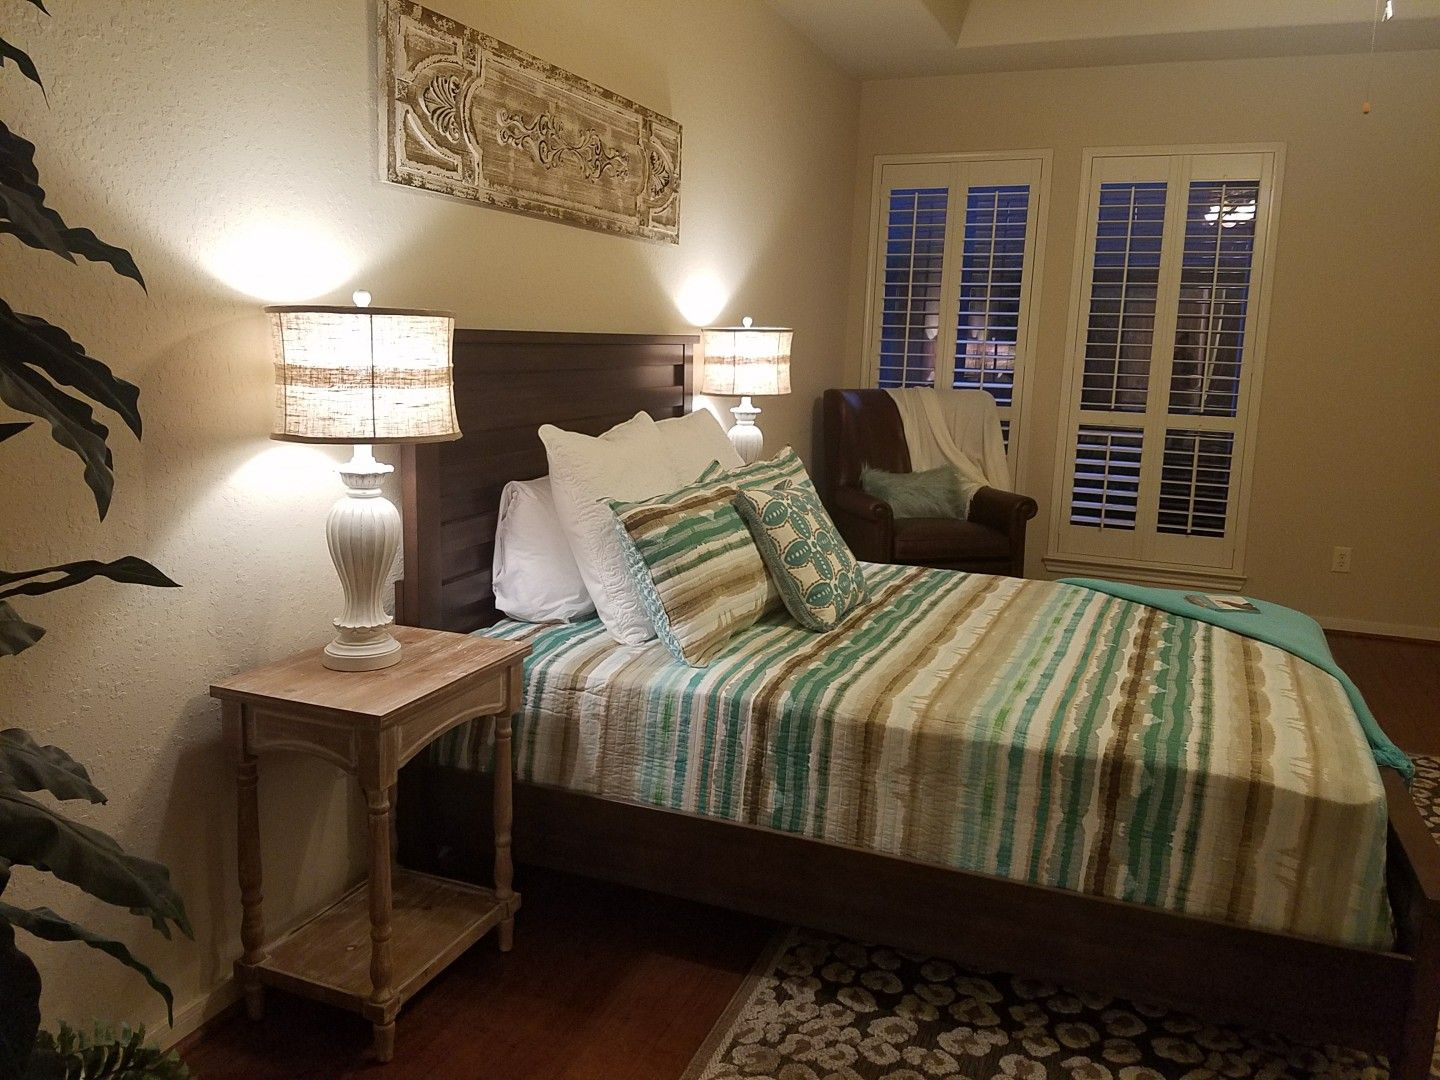 Simple Solutions Home Staging Master bedroom, Home